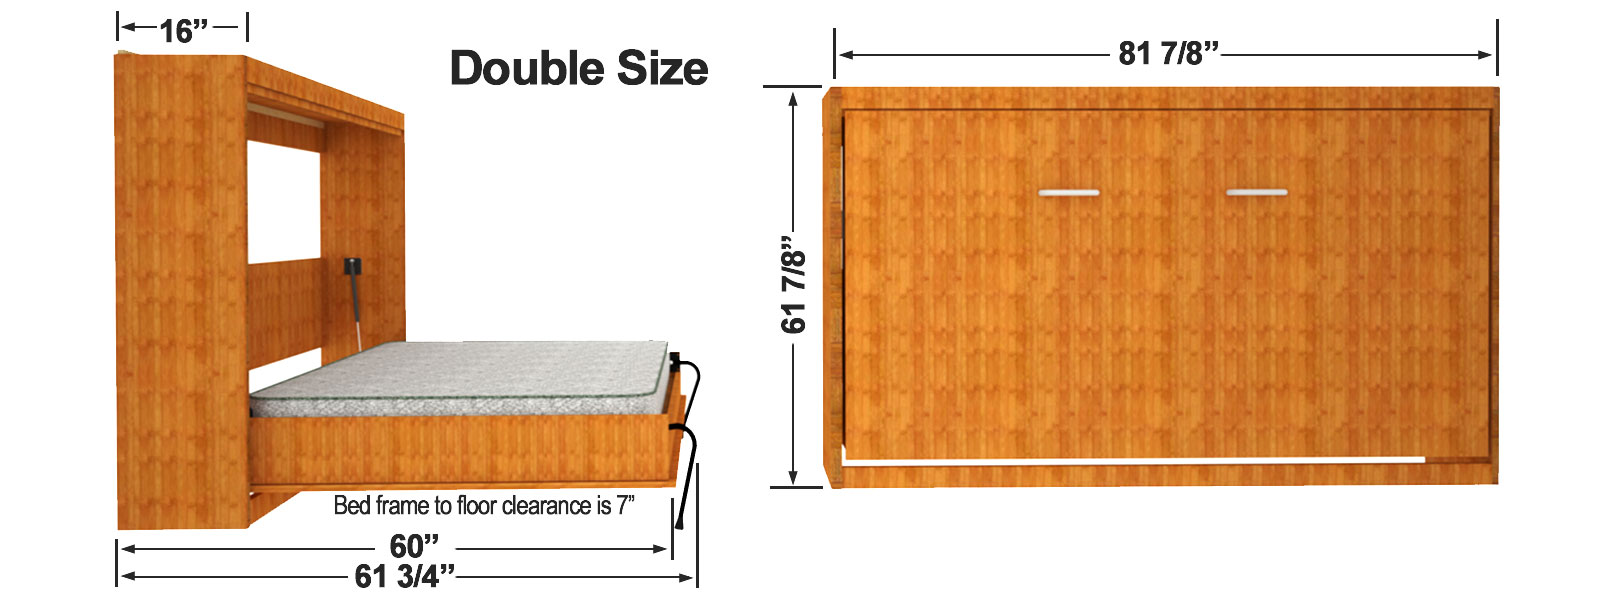 Double Size Horizontal Wall Bed Cabinet Dimensions